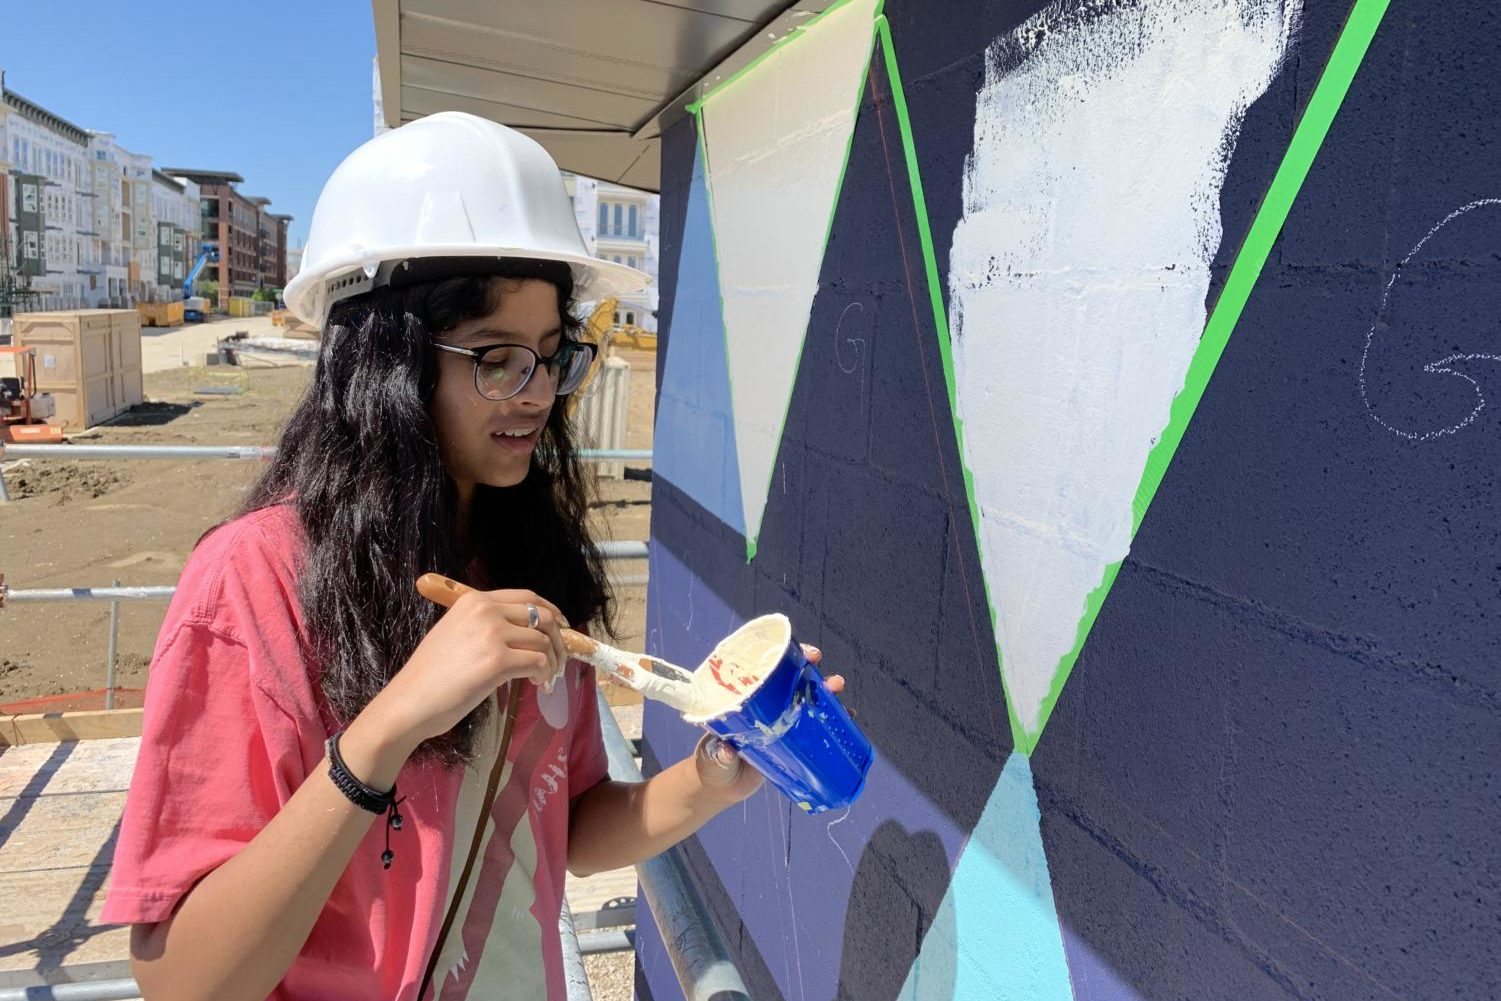 Coppell High School sophomore Ishita Sisodia helps paint a mural at Pump Station in Cypress Waters yesterday. CHS art teacher David Bearden provided students the opportunity to create a mural at Cypress Waters.